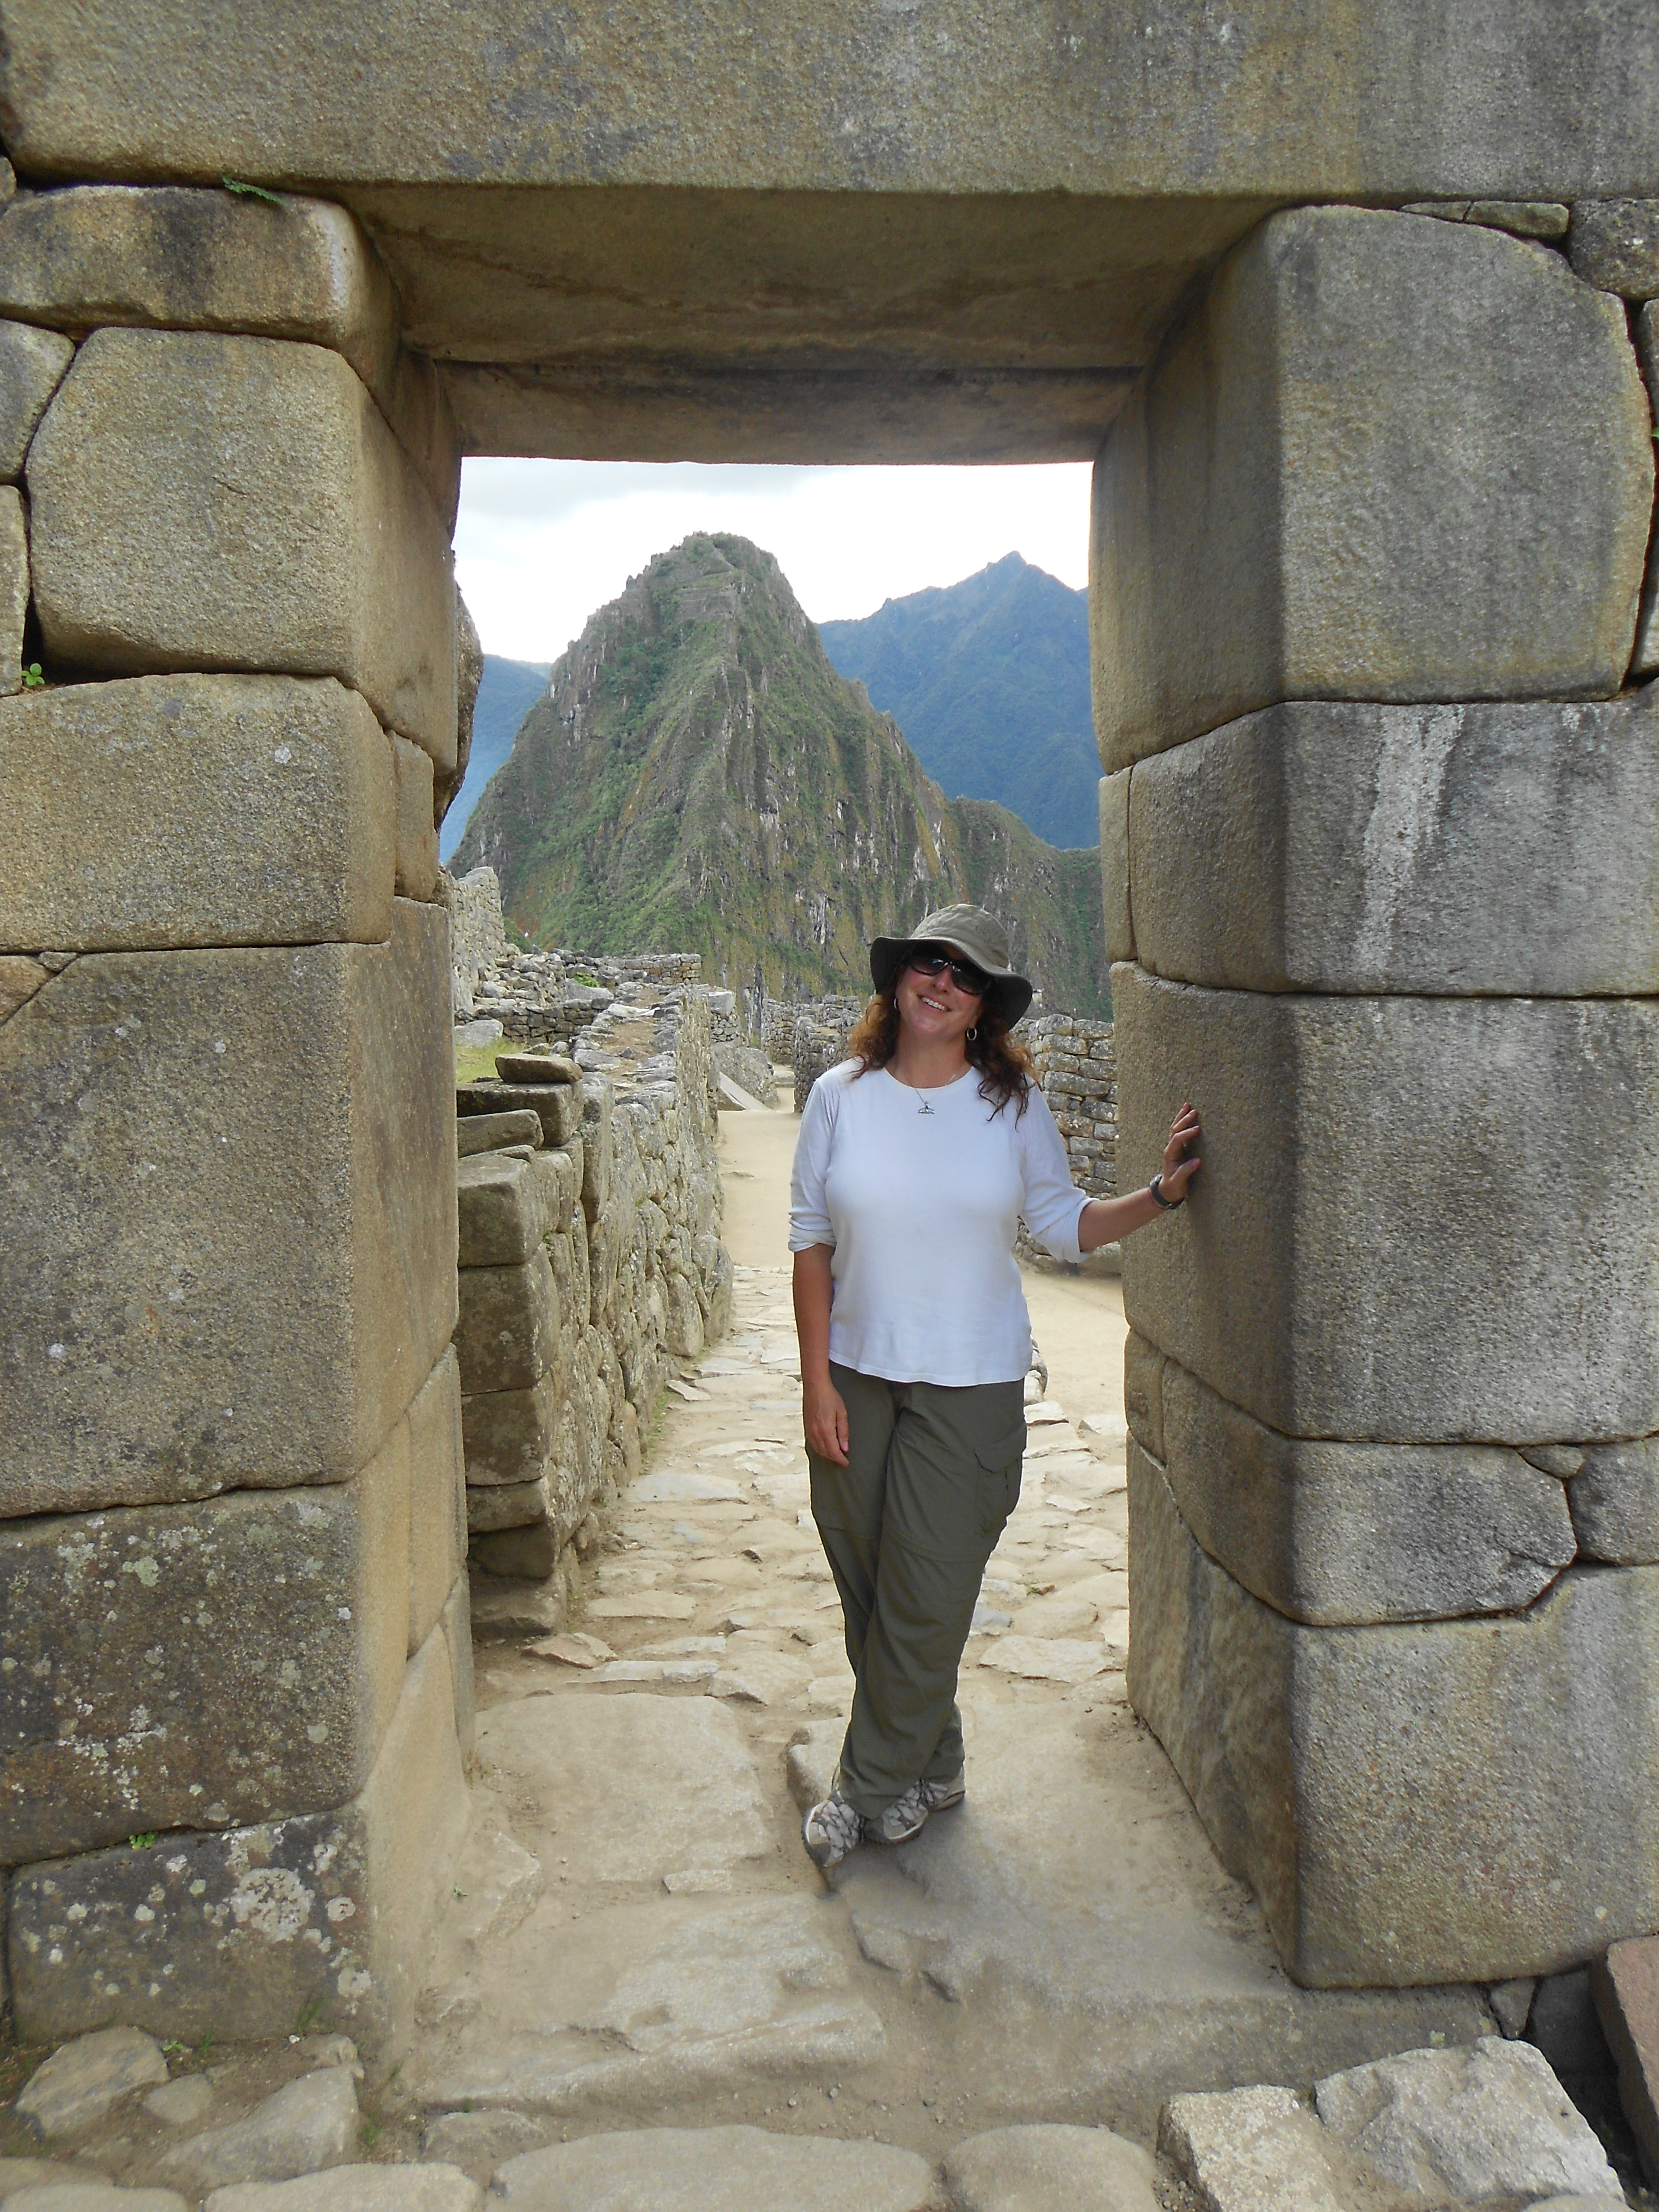 Christine Fiori stands in a stone doorway on a road leading towards the mountains at Machu Picchu.